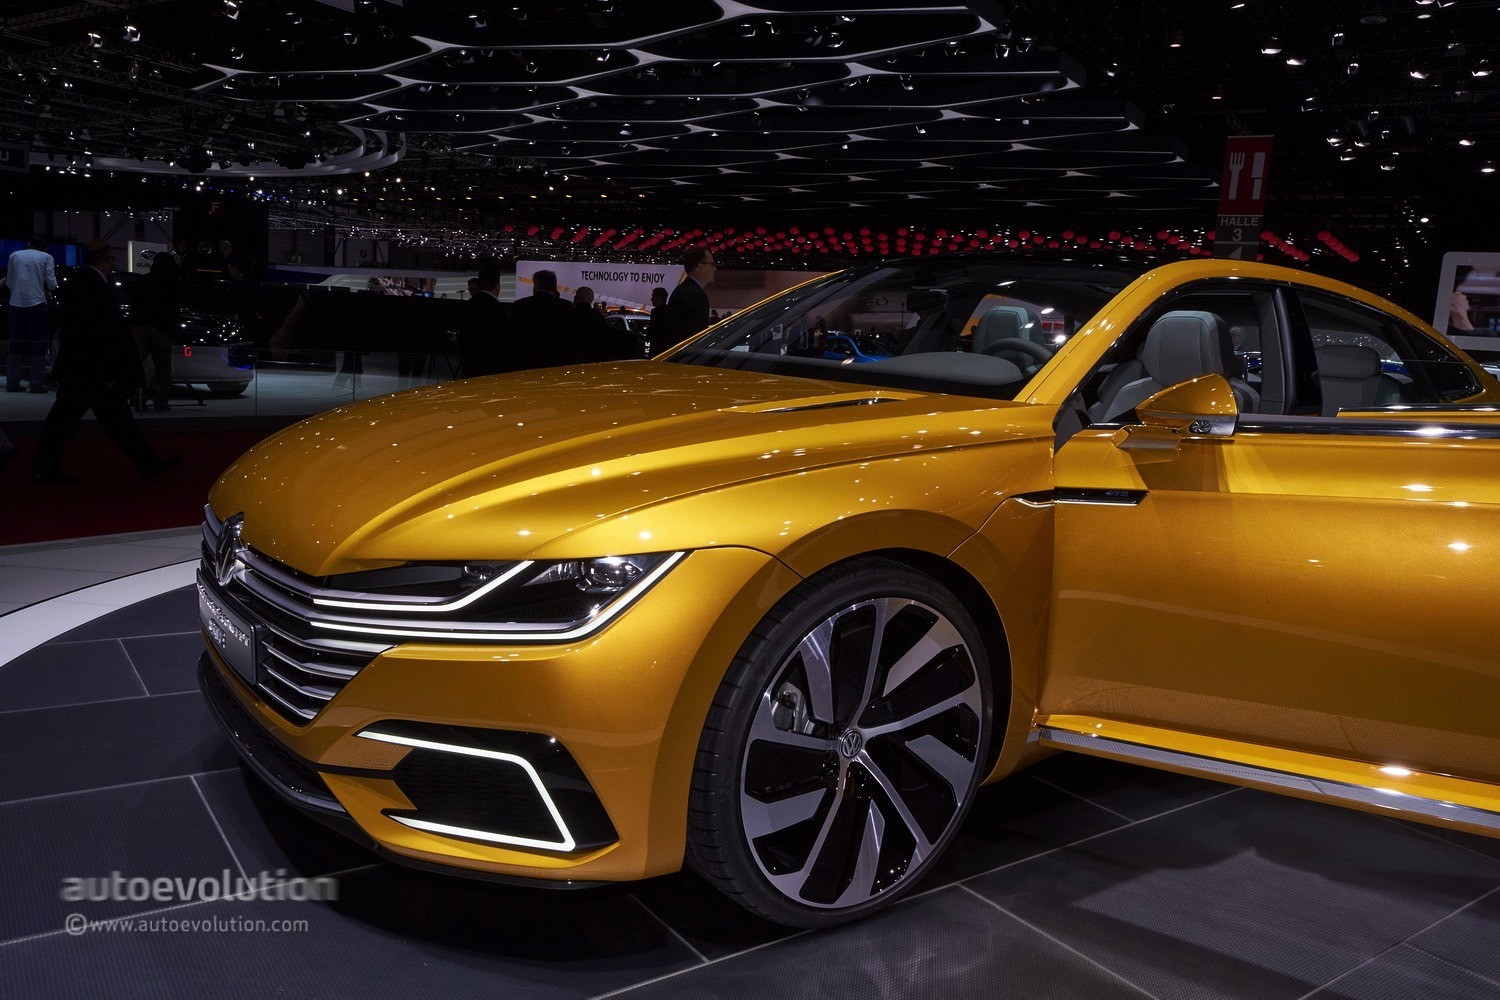 Volkswagen S Arteon Four Door Coupe Could Get A Seat Version Autoevolution